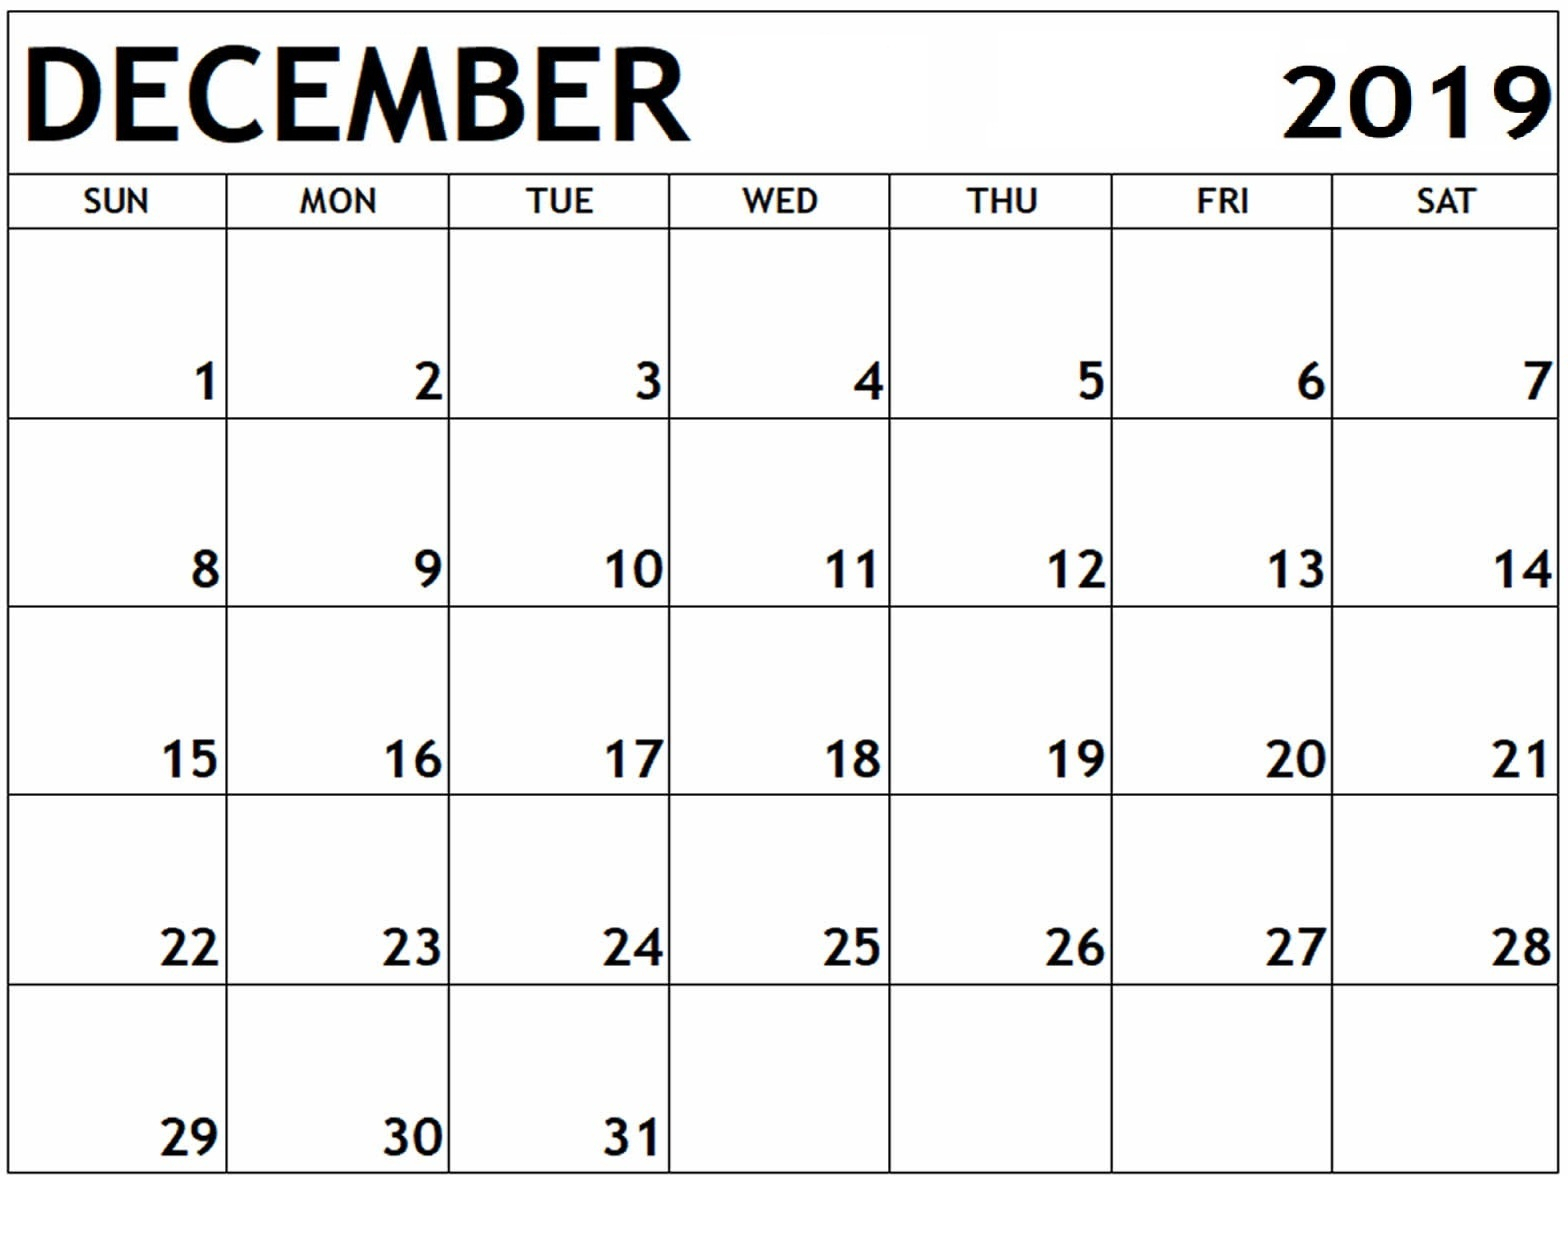 December 2019 Printable Calendar: Weekly Calendar For